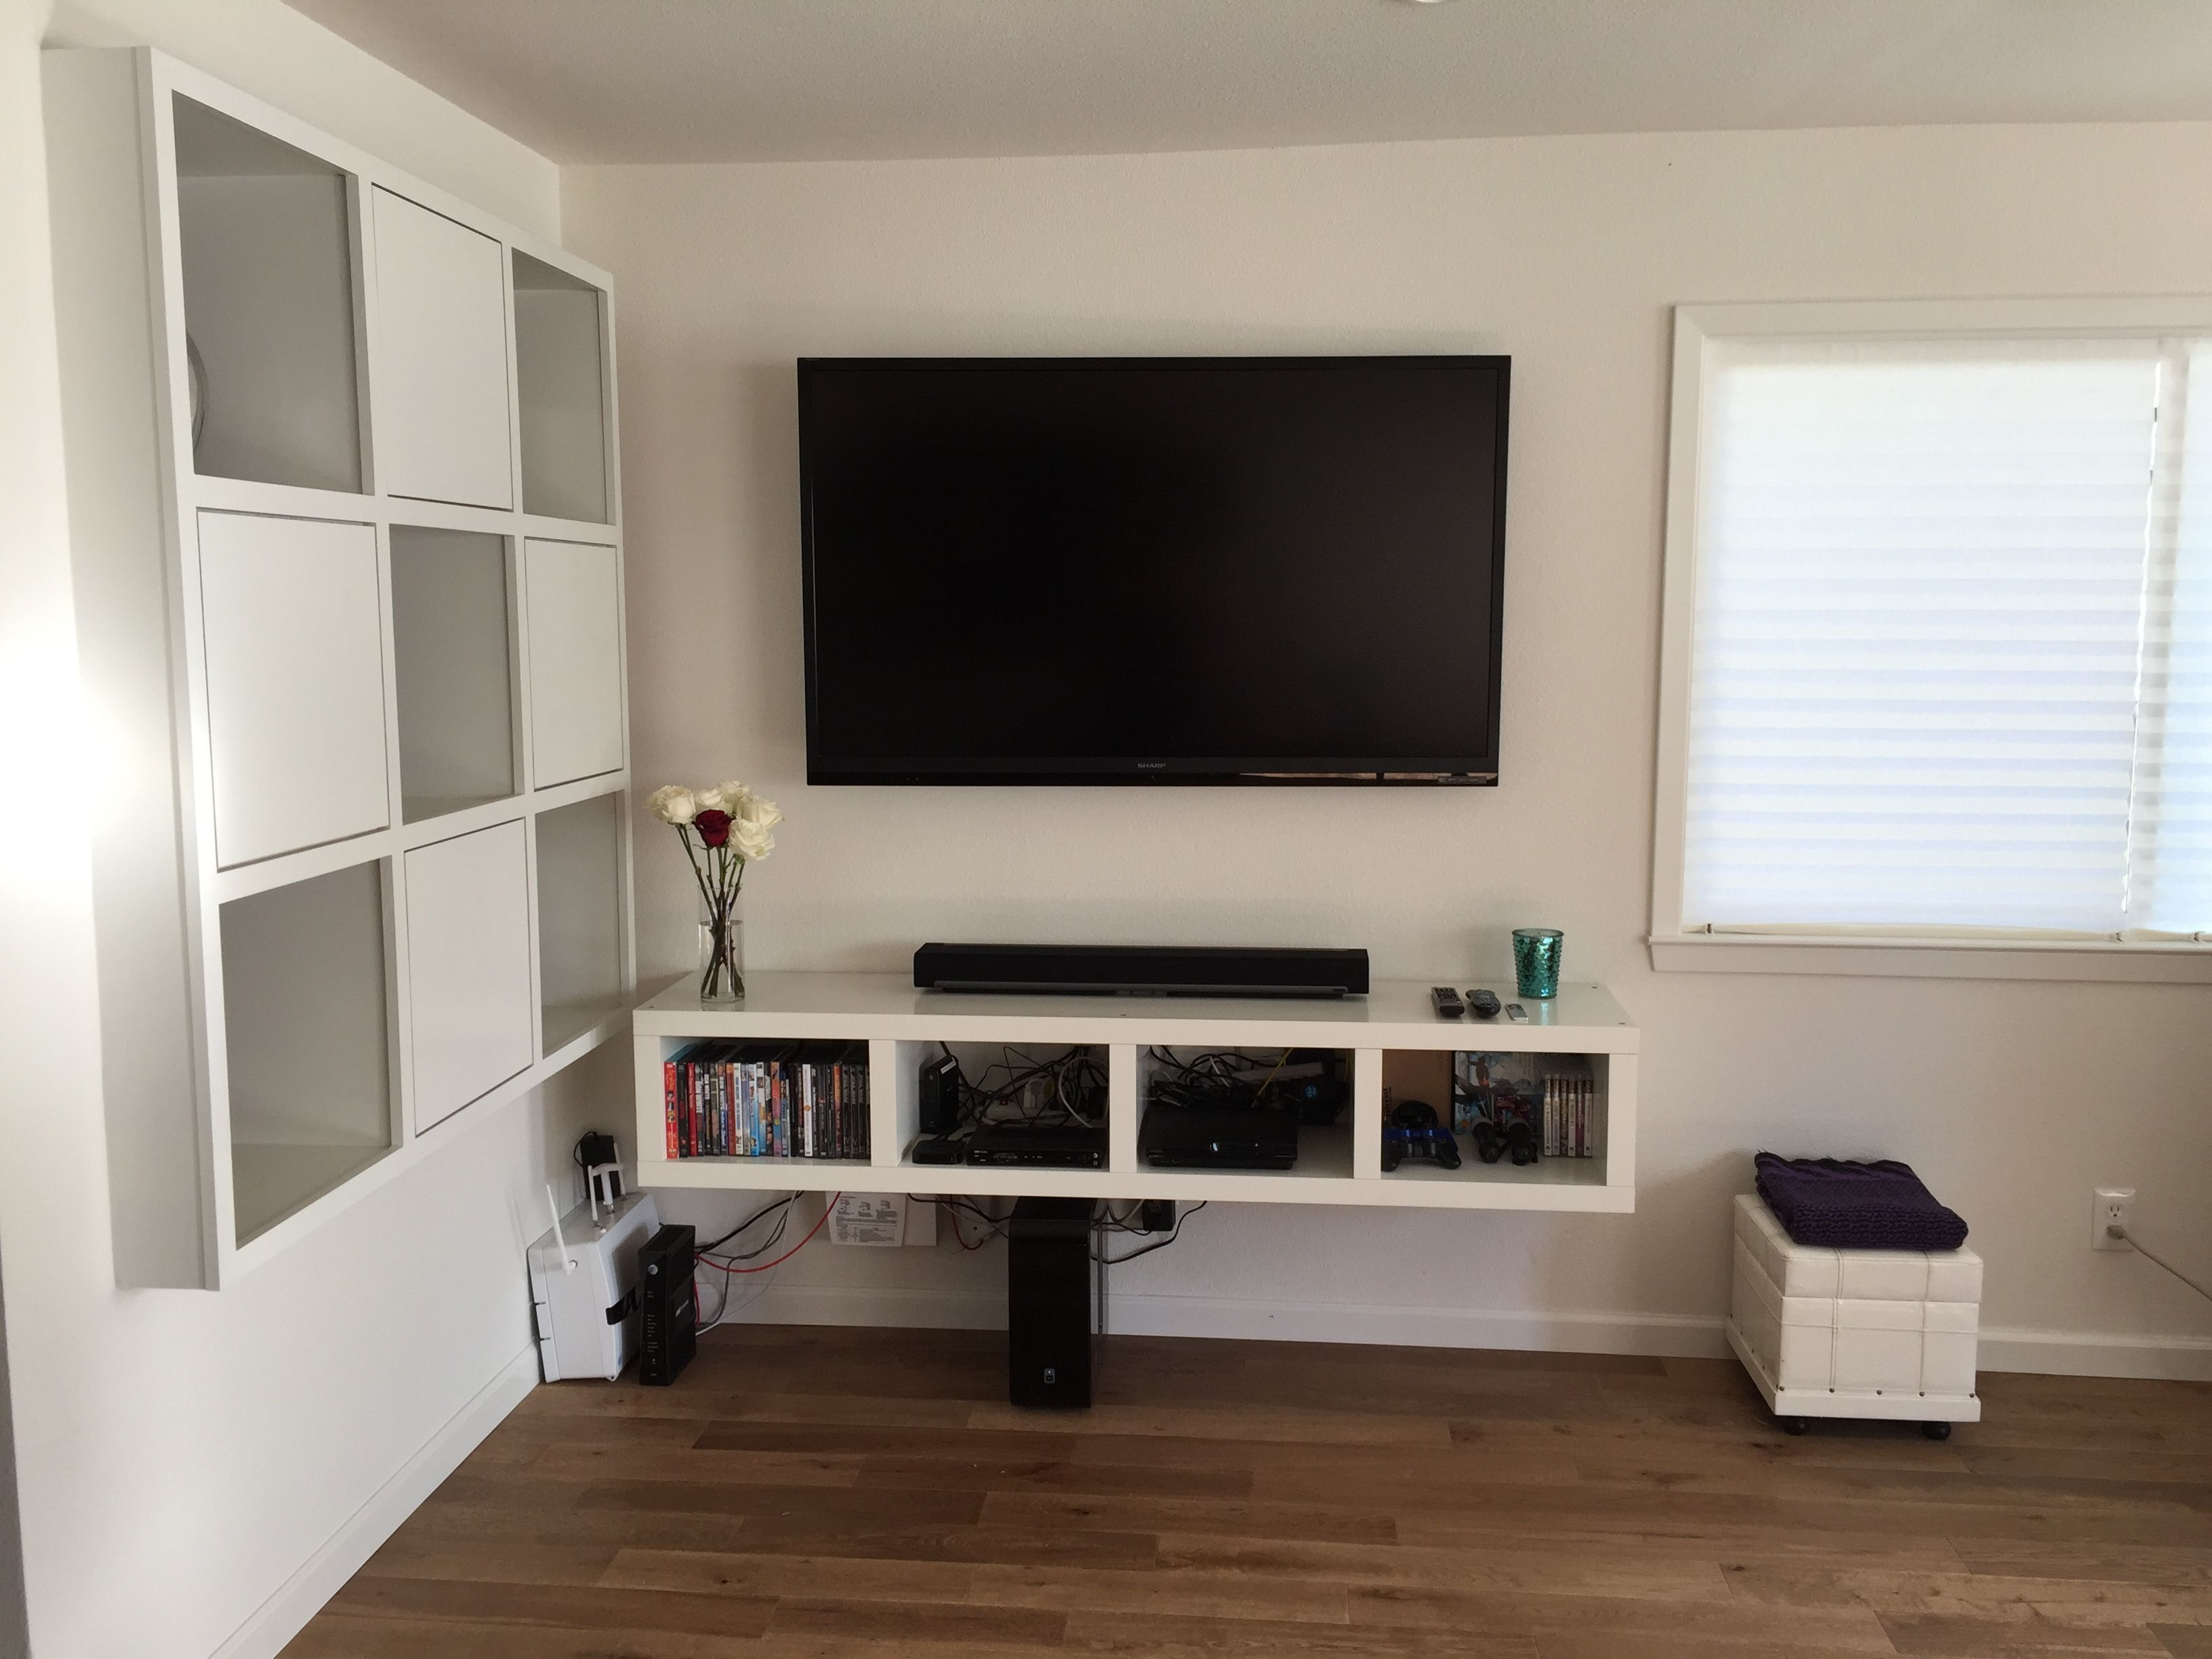 Ikea Bookshelf Converted To Floating Tv Stand Expedit Lack